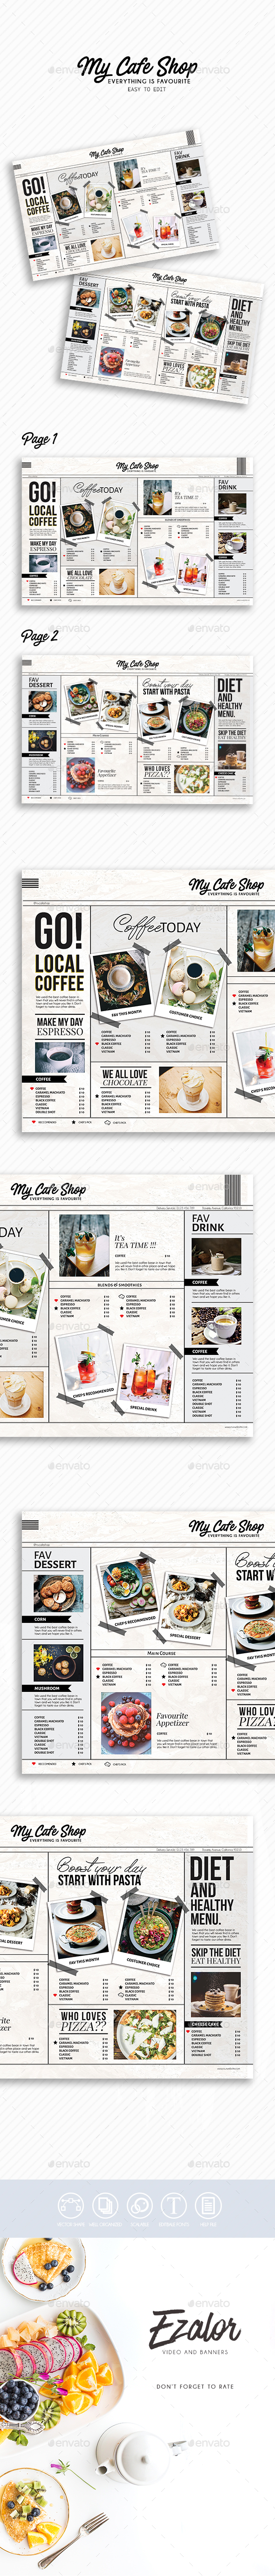 Cafe Boss - Food Menus Print Templates